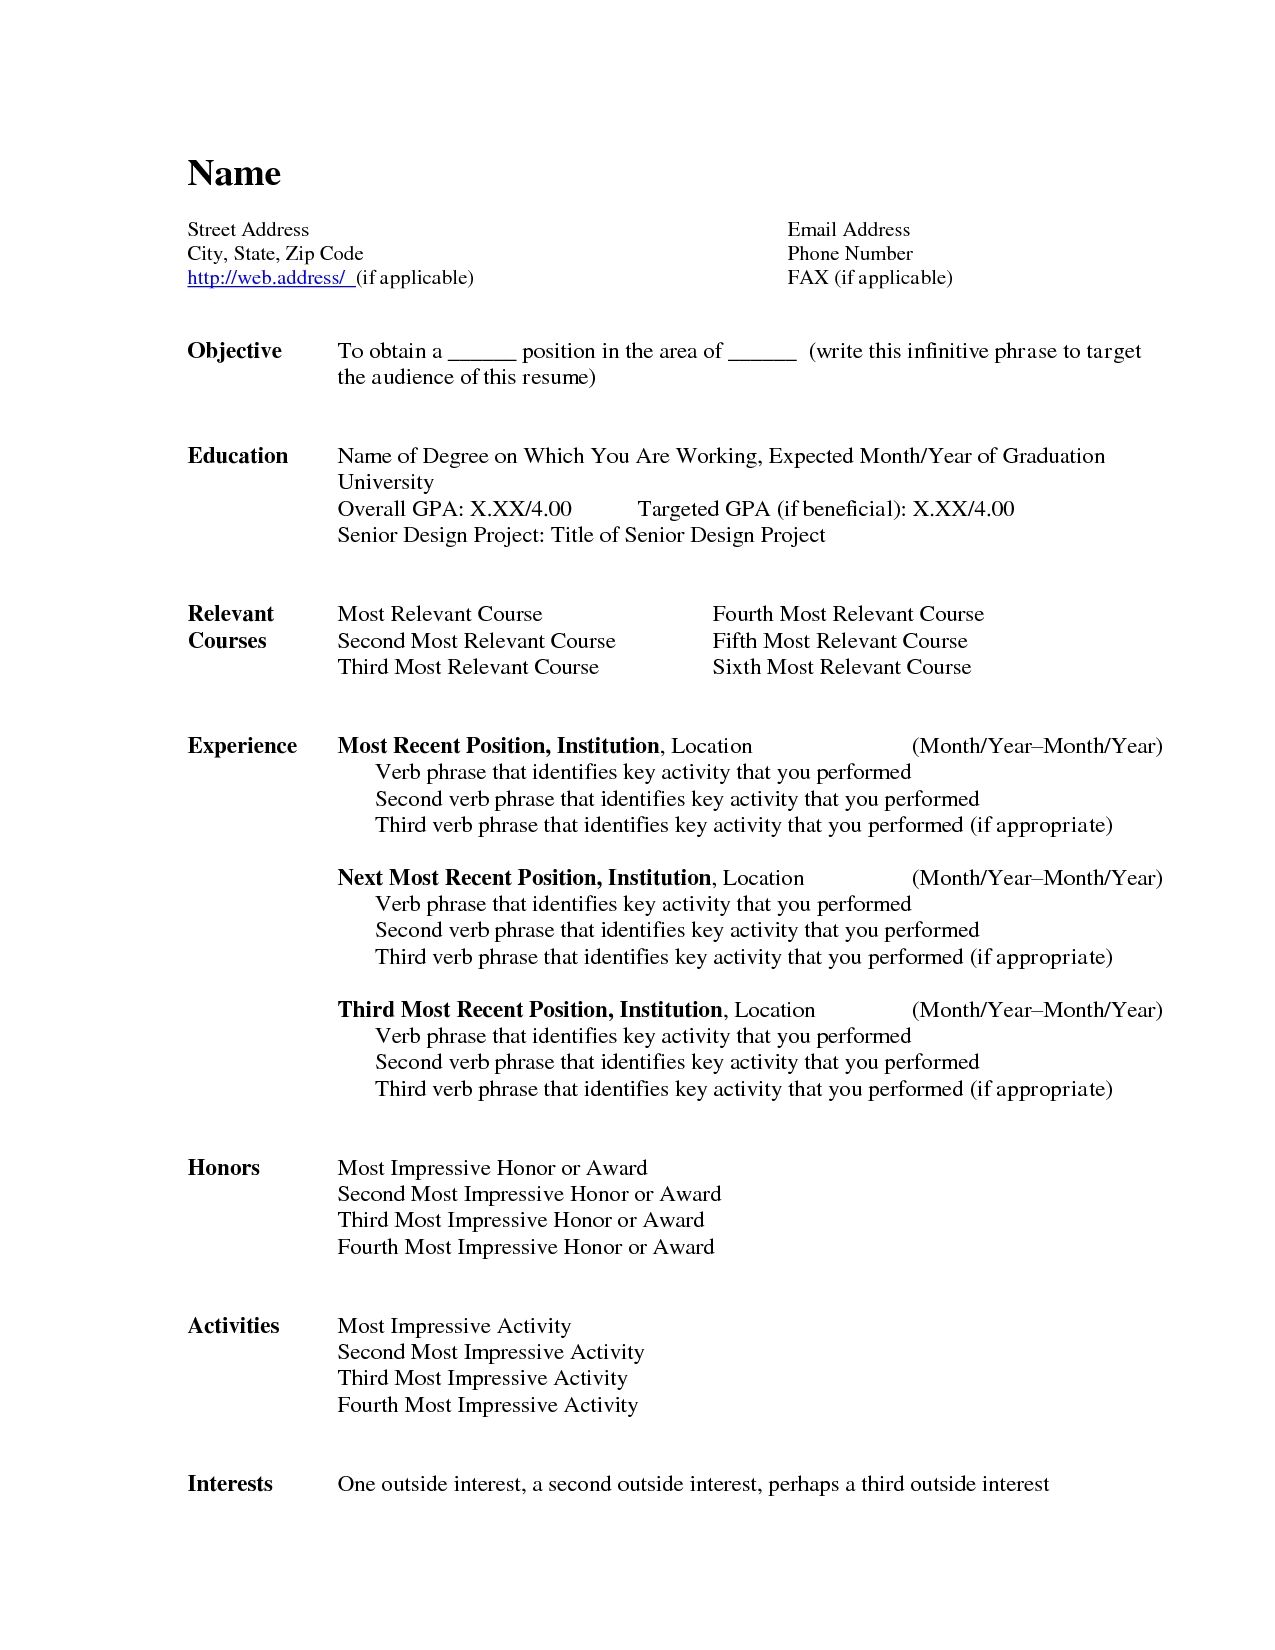 Photo ms word resume format images the ms word resume format new ms word resume format ms word resume format resume template online yelopaper Gallery